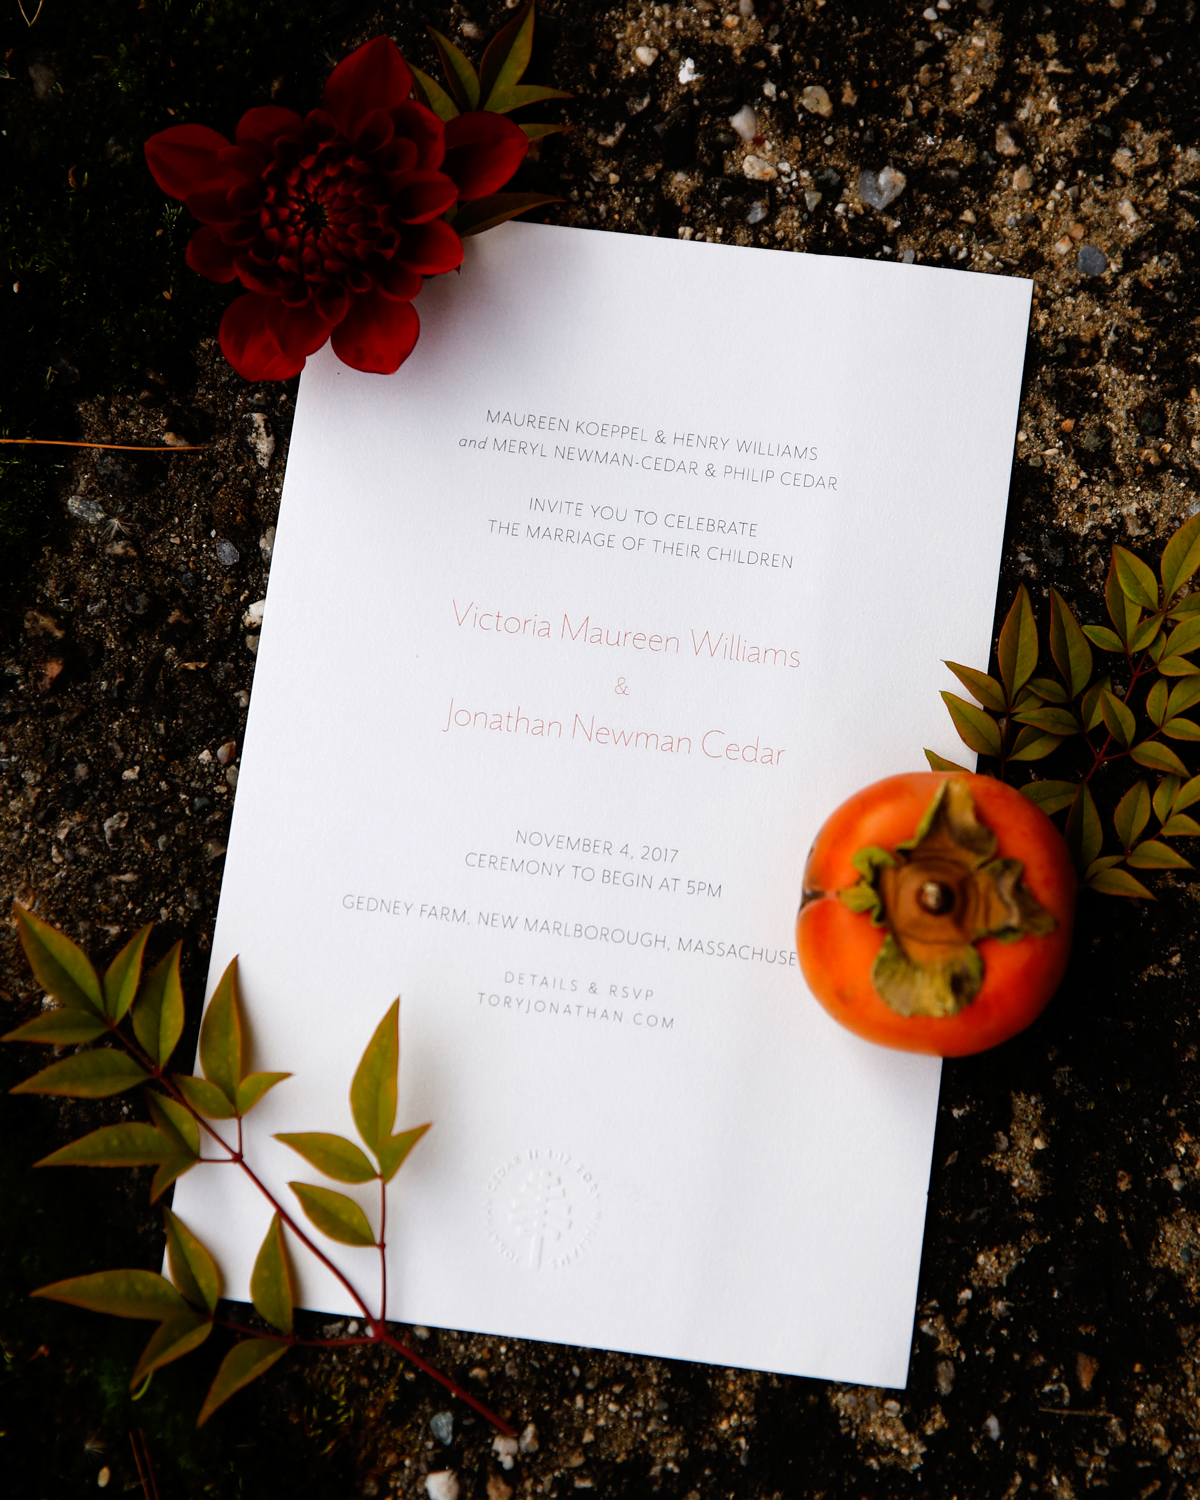 tory jonathan wedding invite with tomato